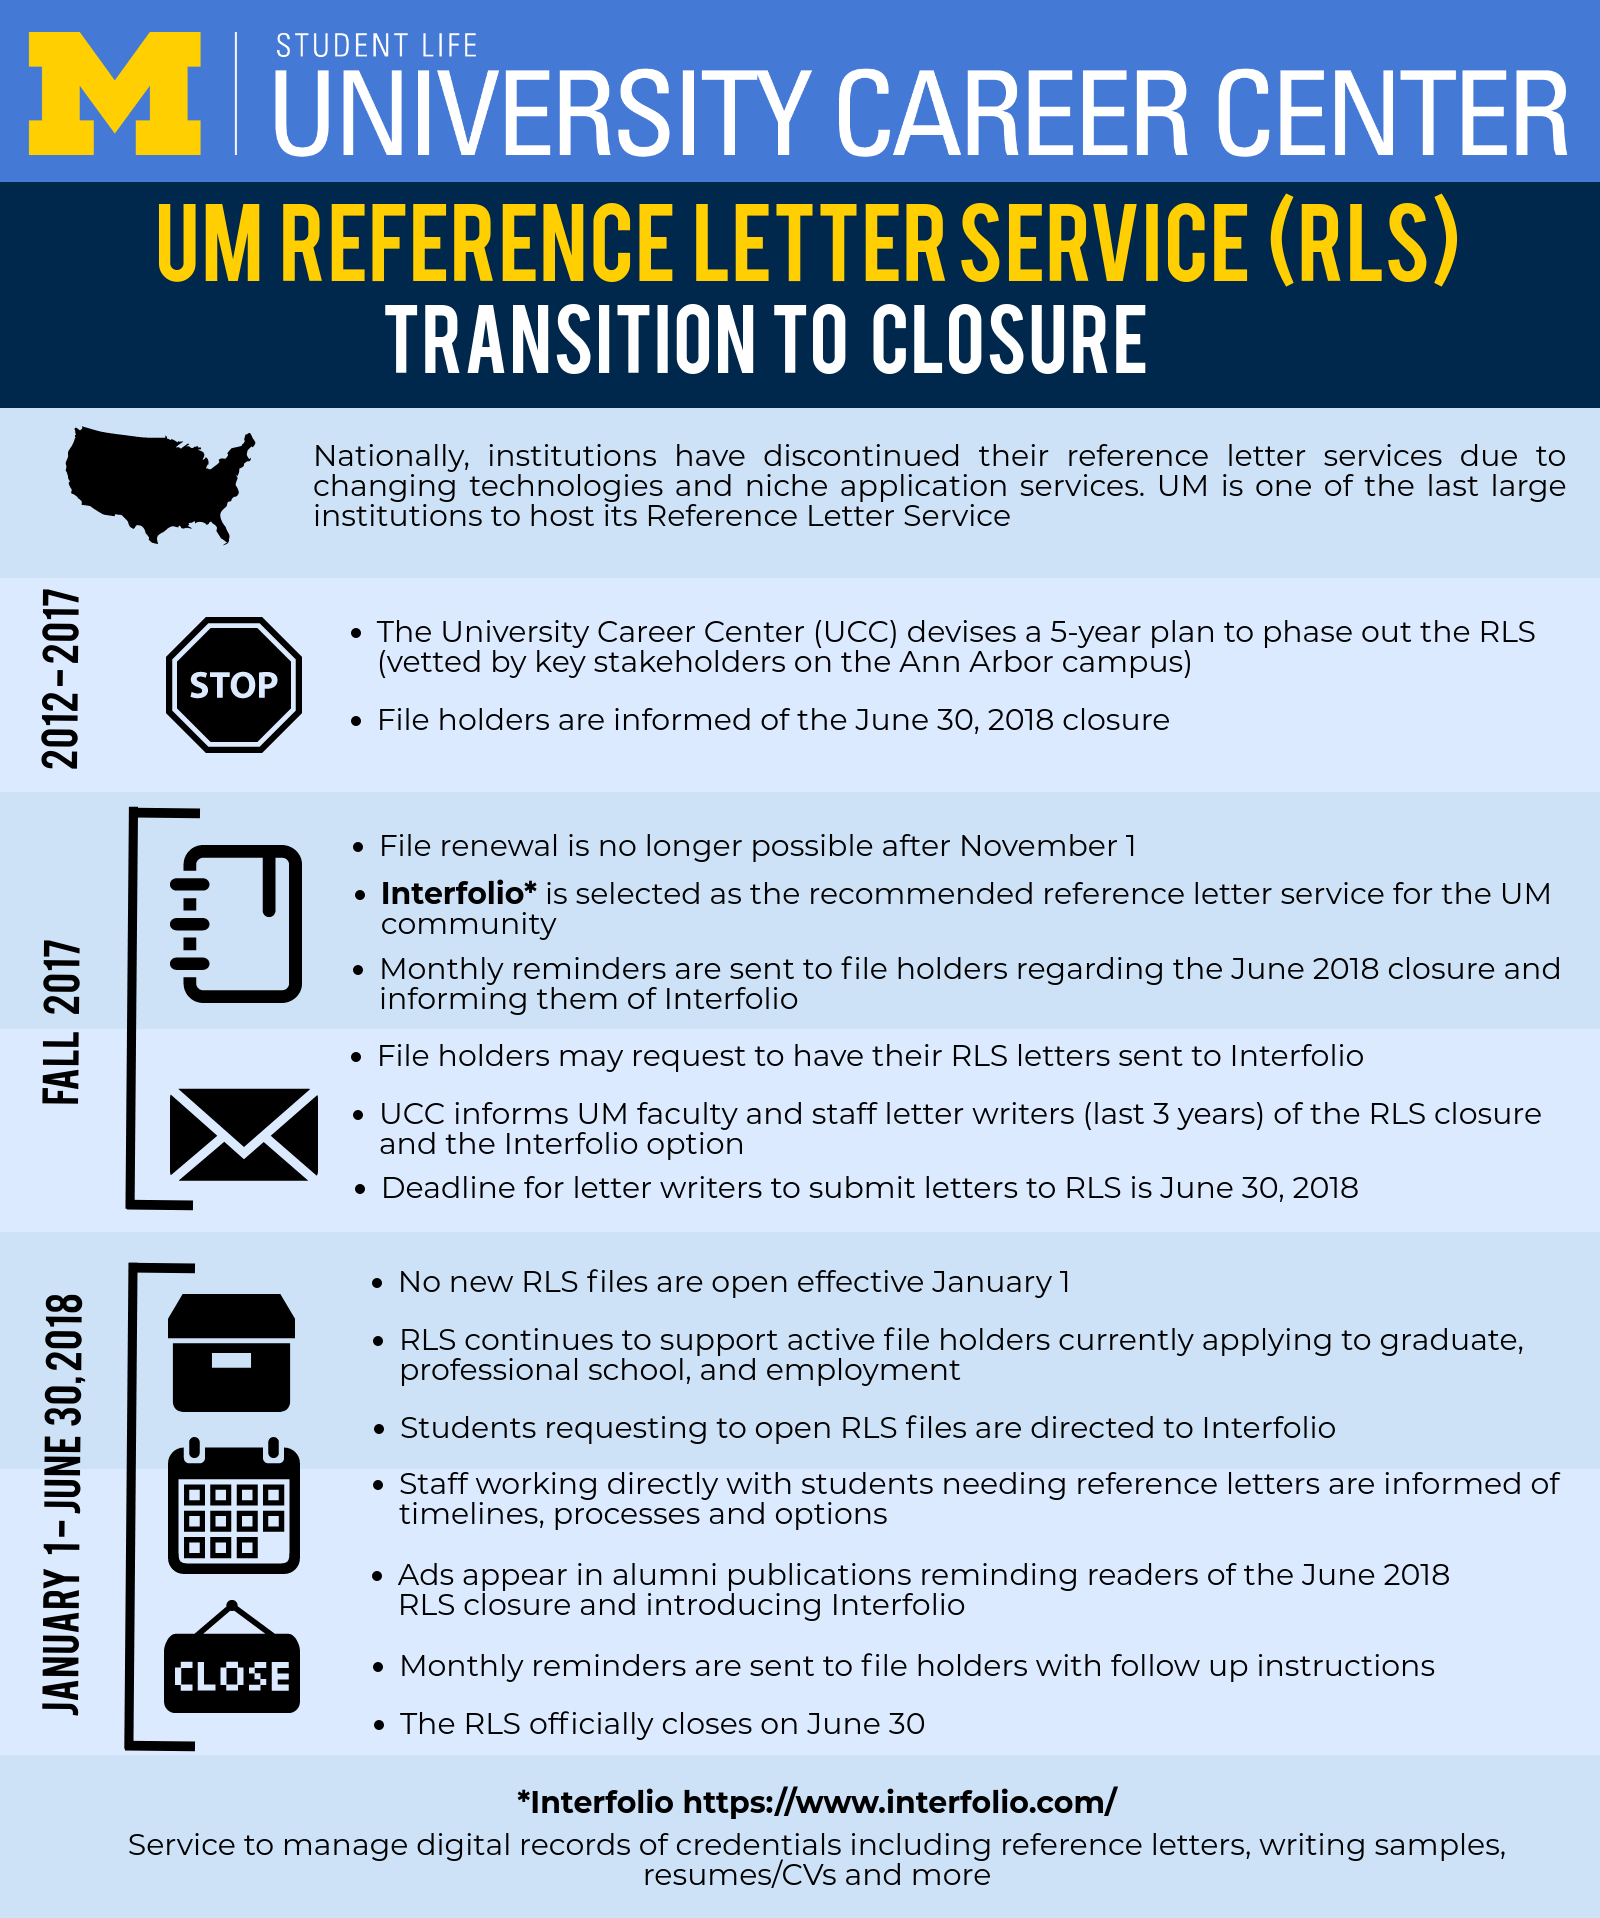 Um Reference Letter Service Rls Transition To Closure